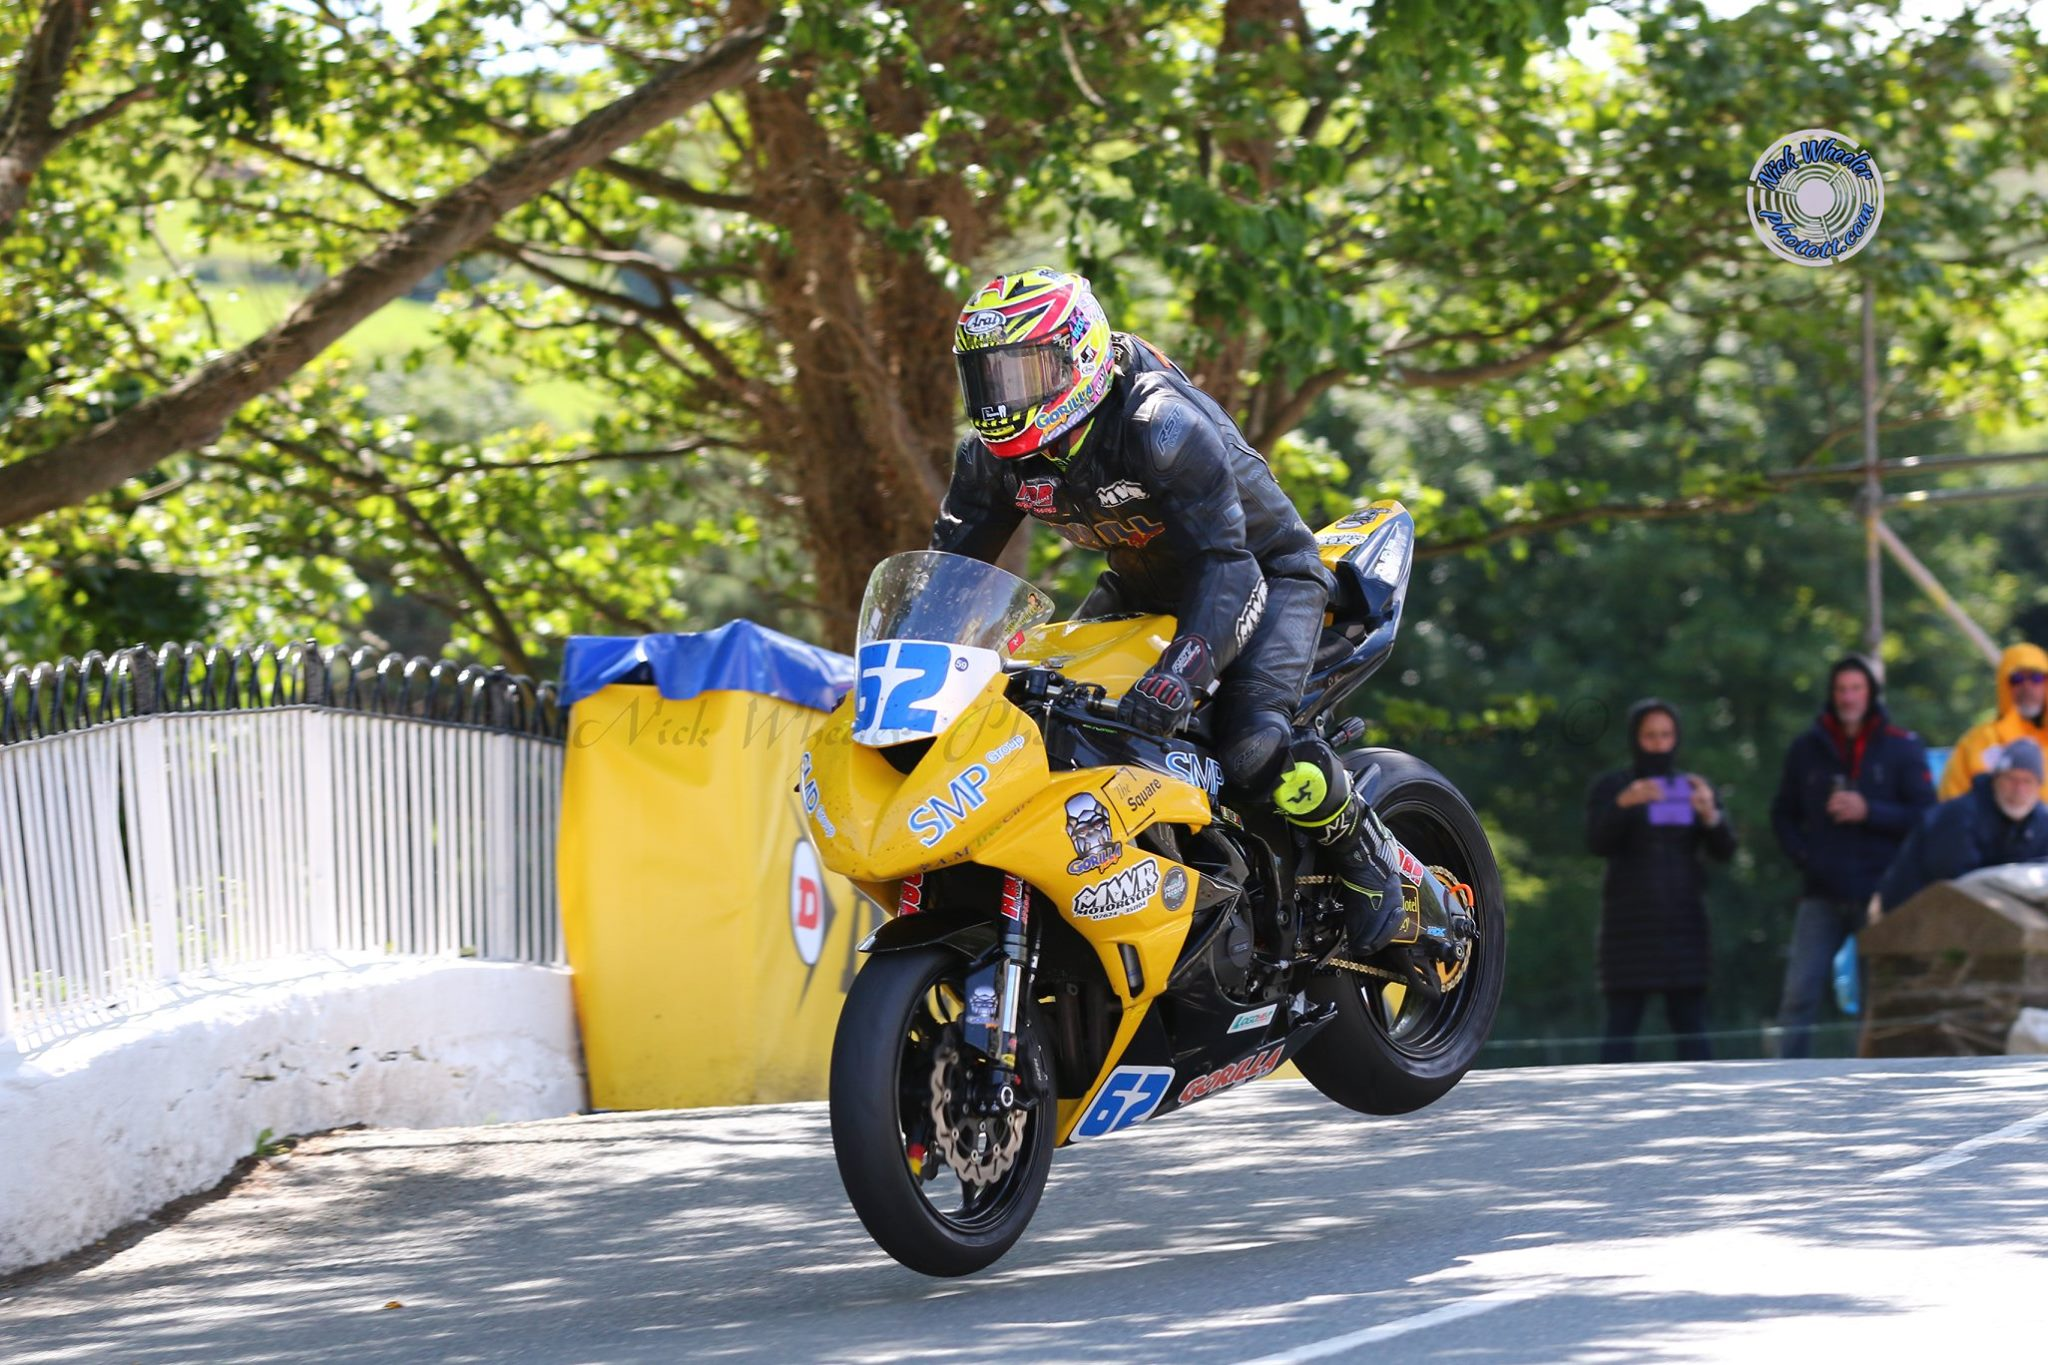 Gorilla Racing/MWR Motorcycles Squad Confirm Two Rider TT 2020 Entry